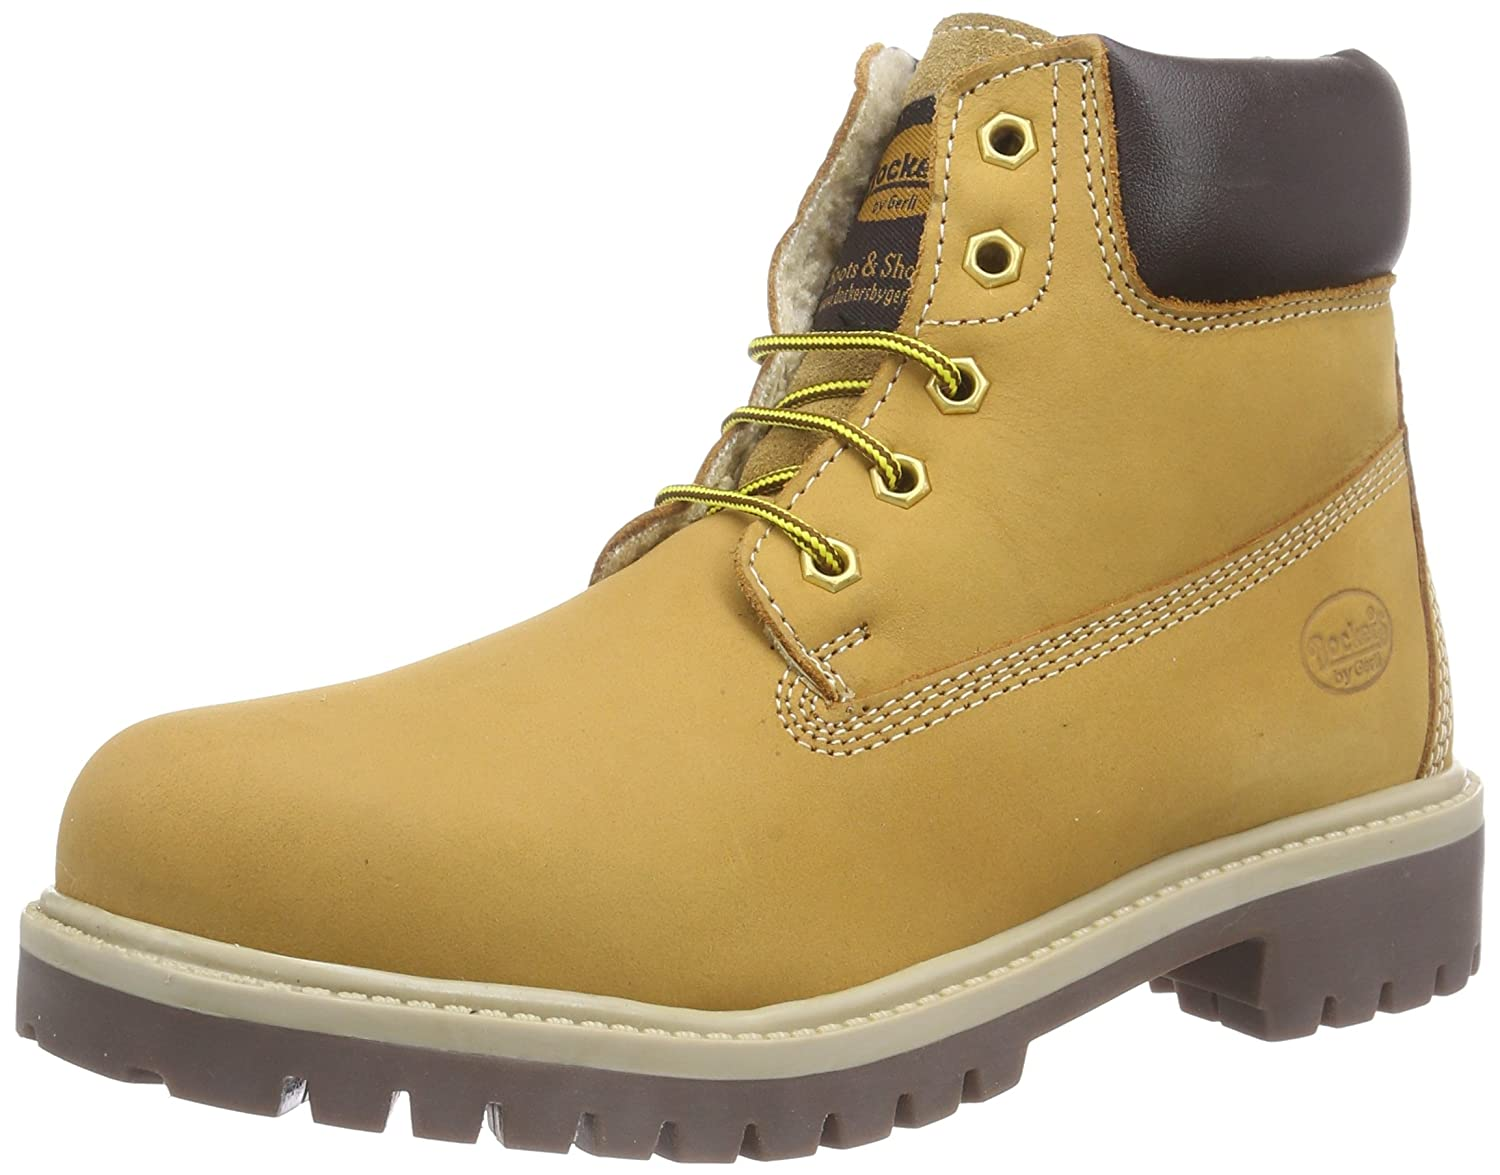 Dockers by Gerli 35FN701-300910 Unisex-Kinder Combat Boots